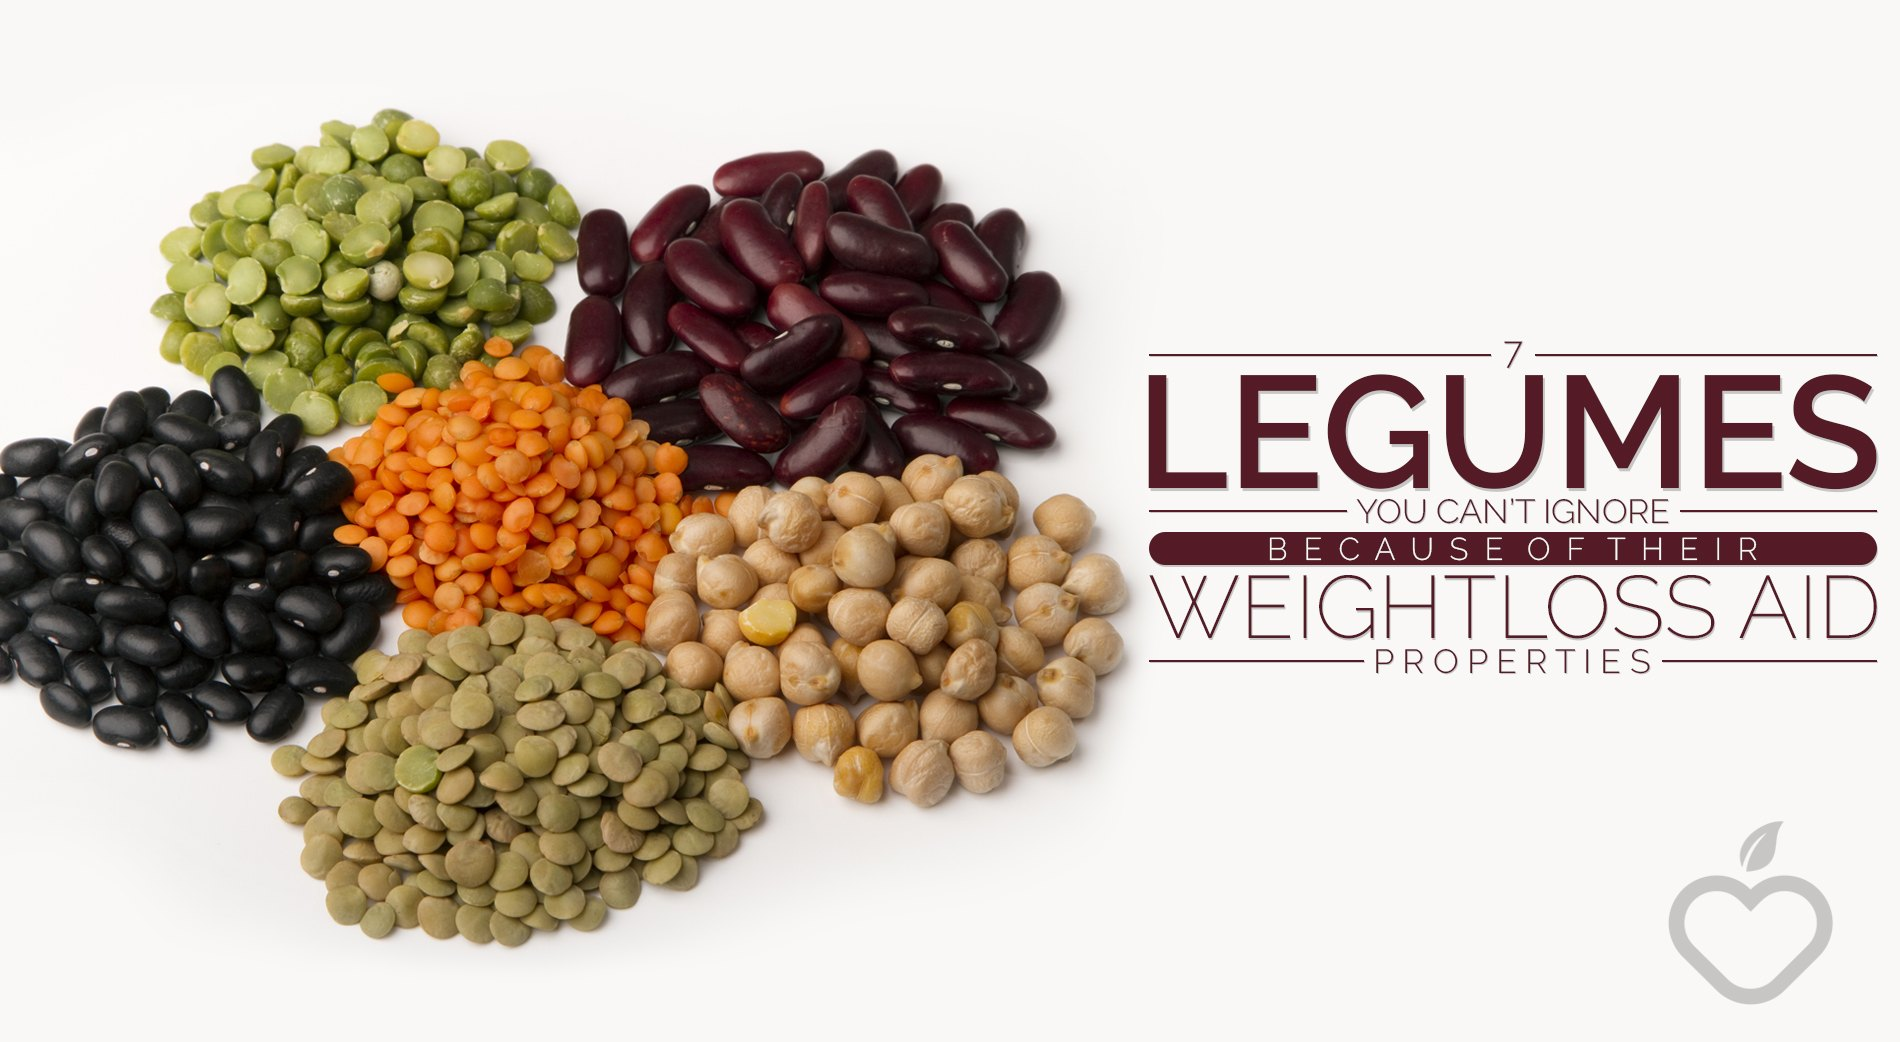 Legumes Image Design 1 - 7 Legumes You Cannot Ignore Because Of Their Weight Loss Aid Properties